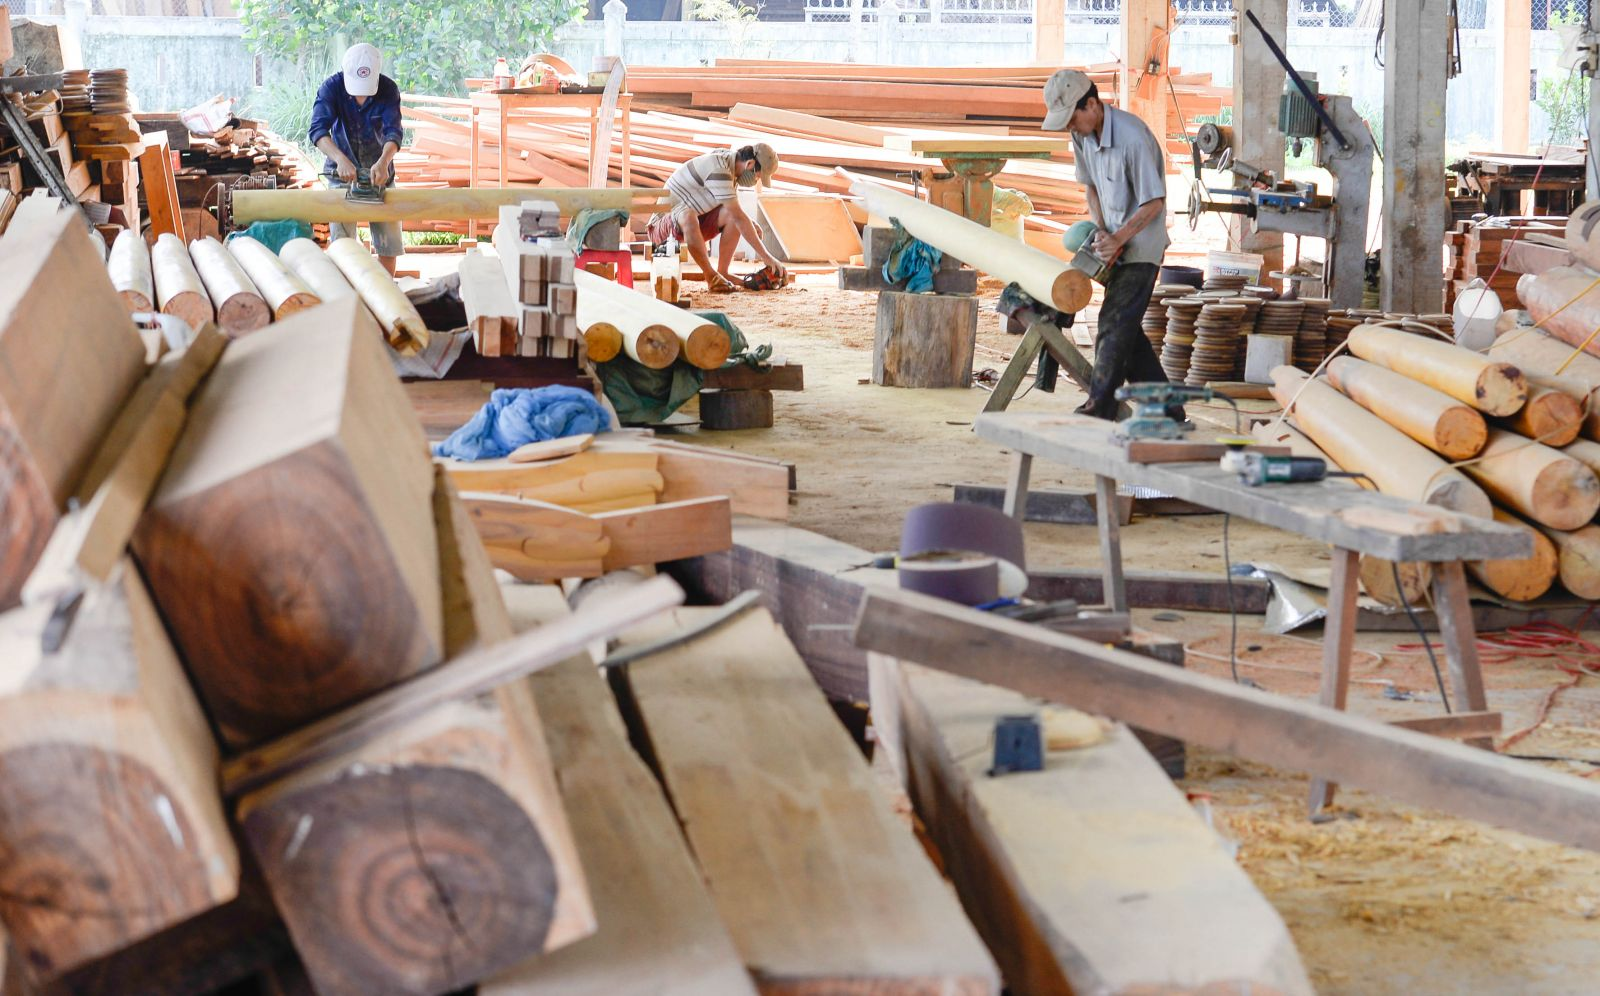 Materials are prepared at the sawmill before turning into products